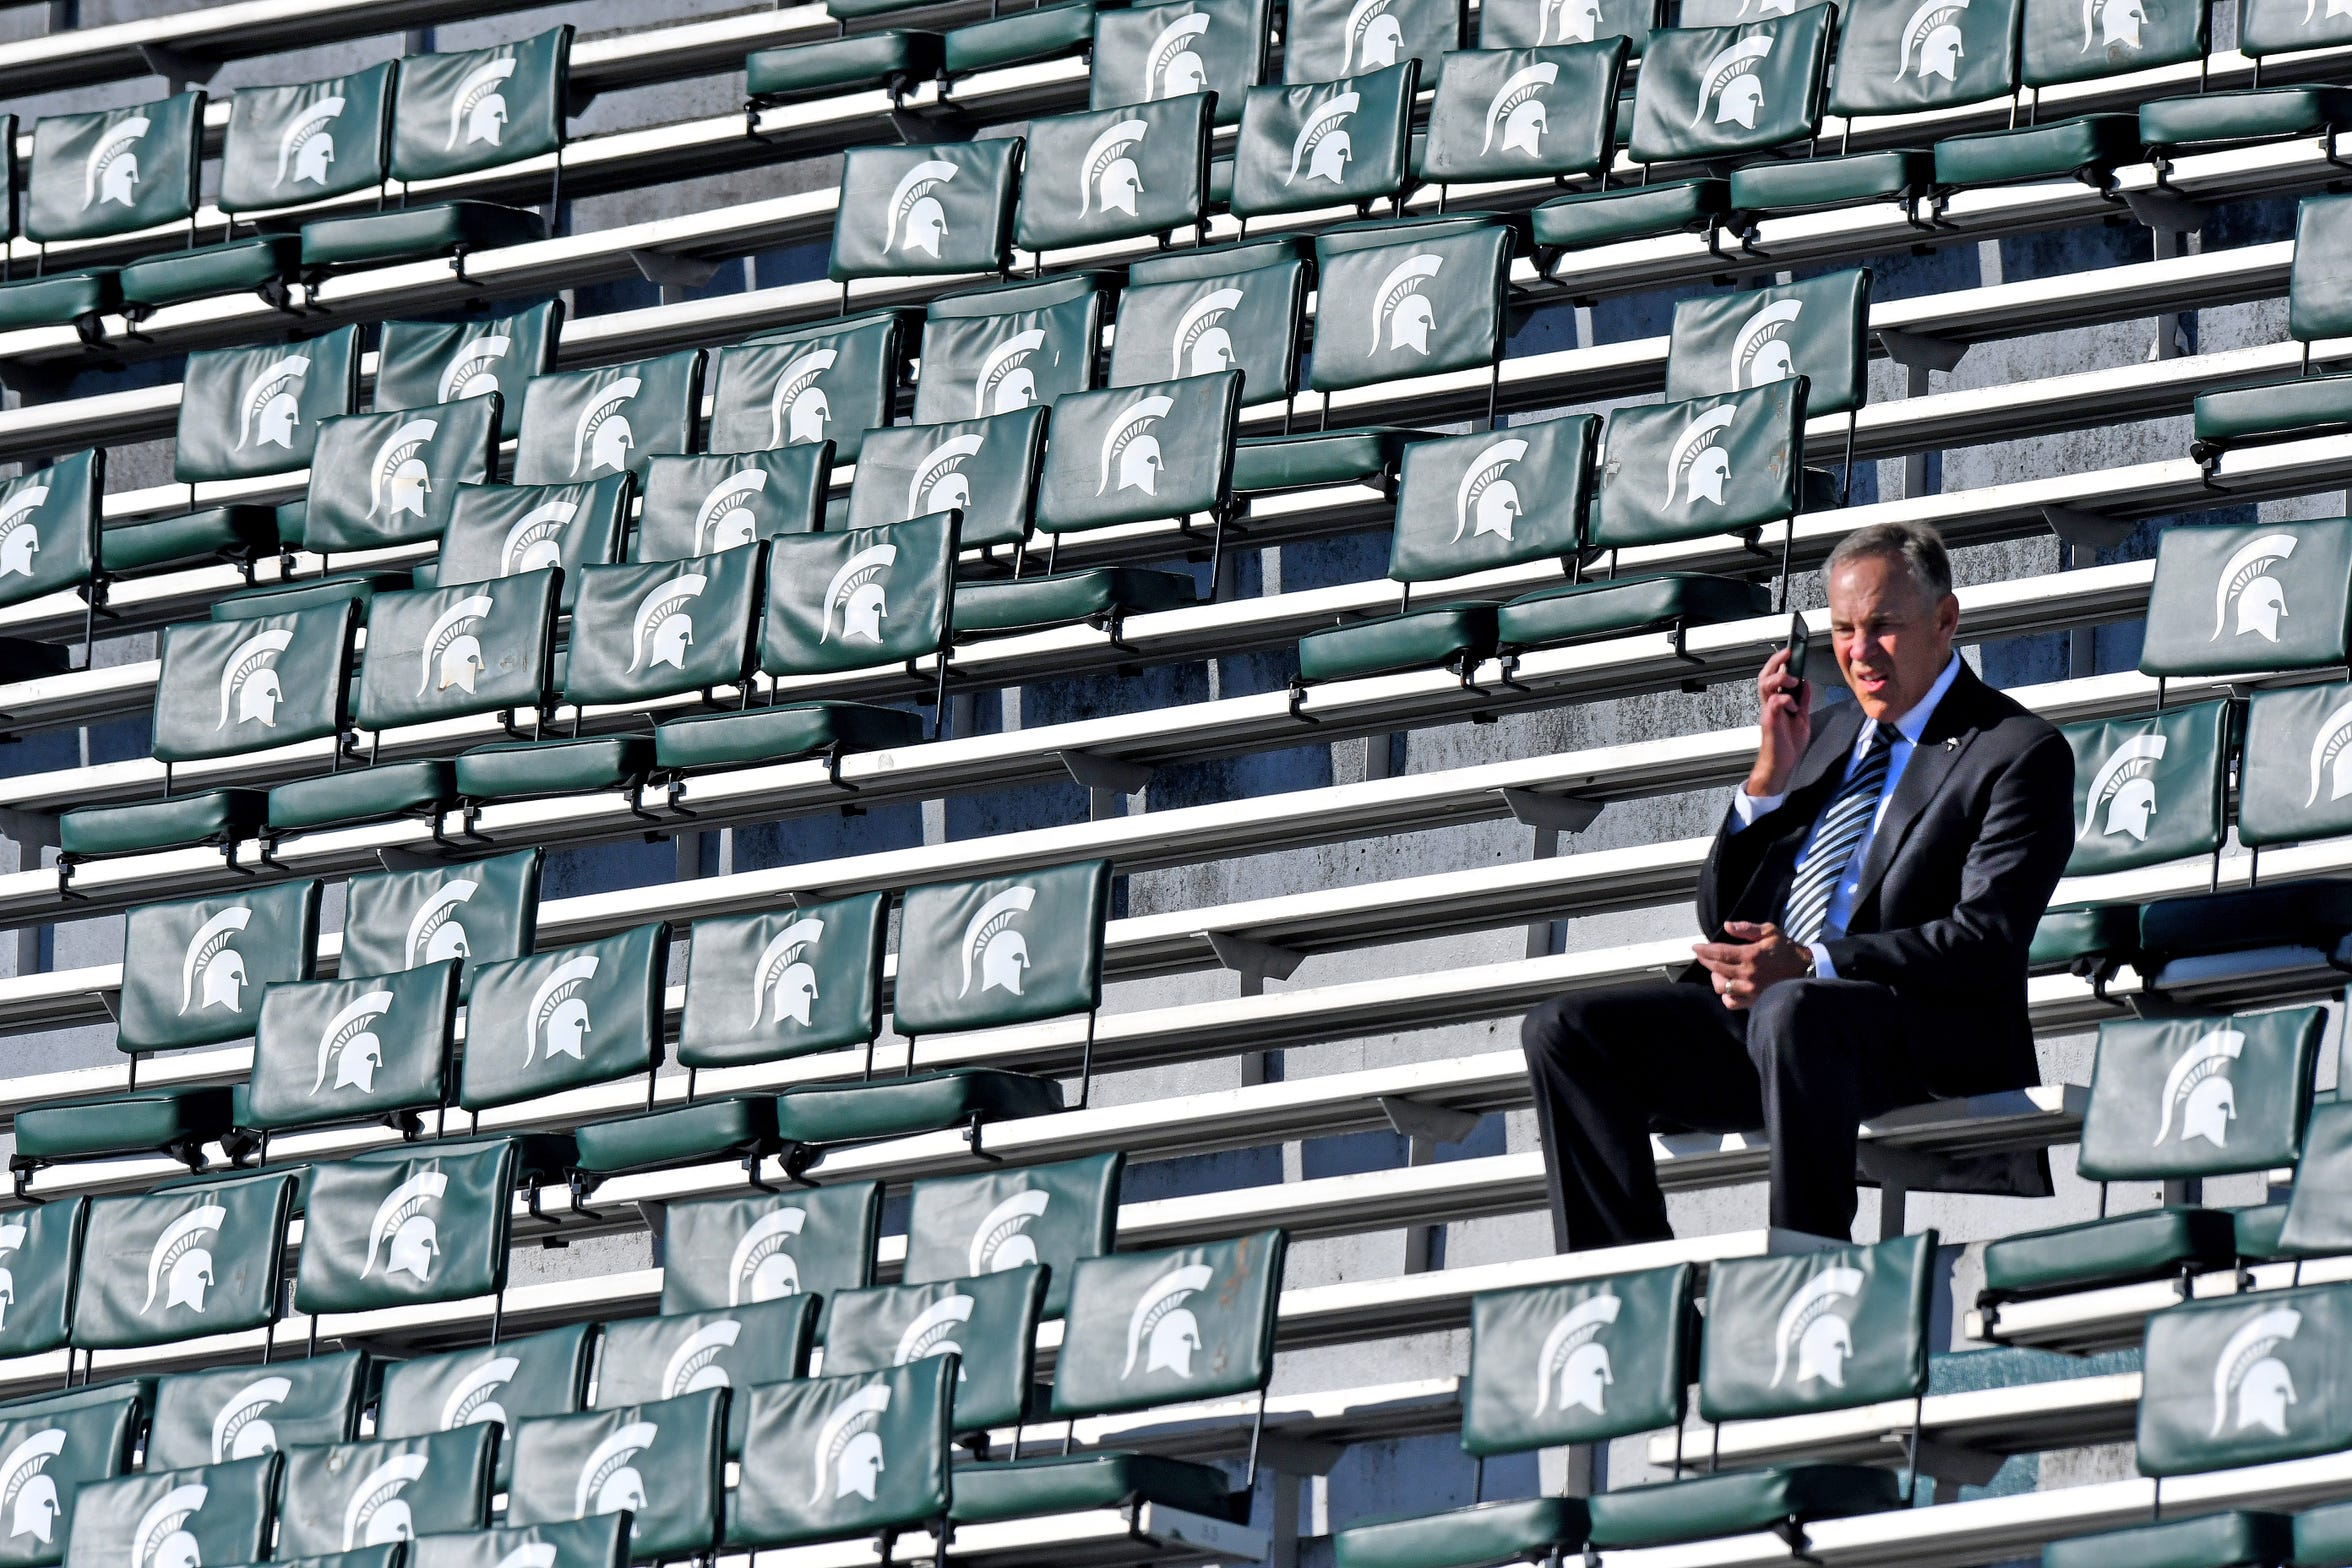 Head coach Mark Dantonio takes a phone call while sitting in the stands before Michigan State's 2018 game against Central Michigan.